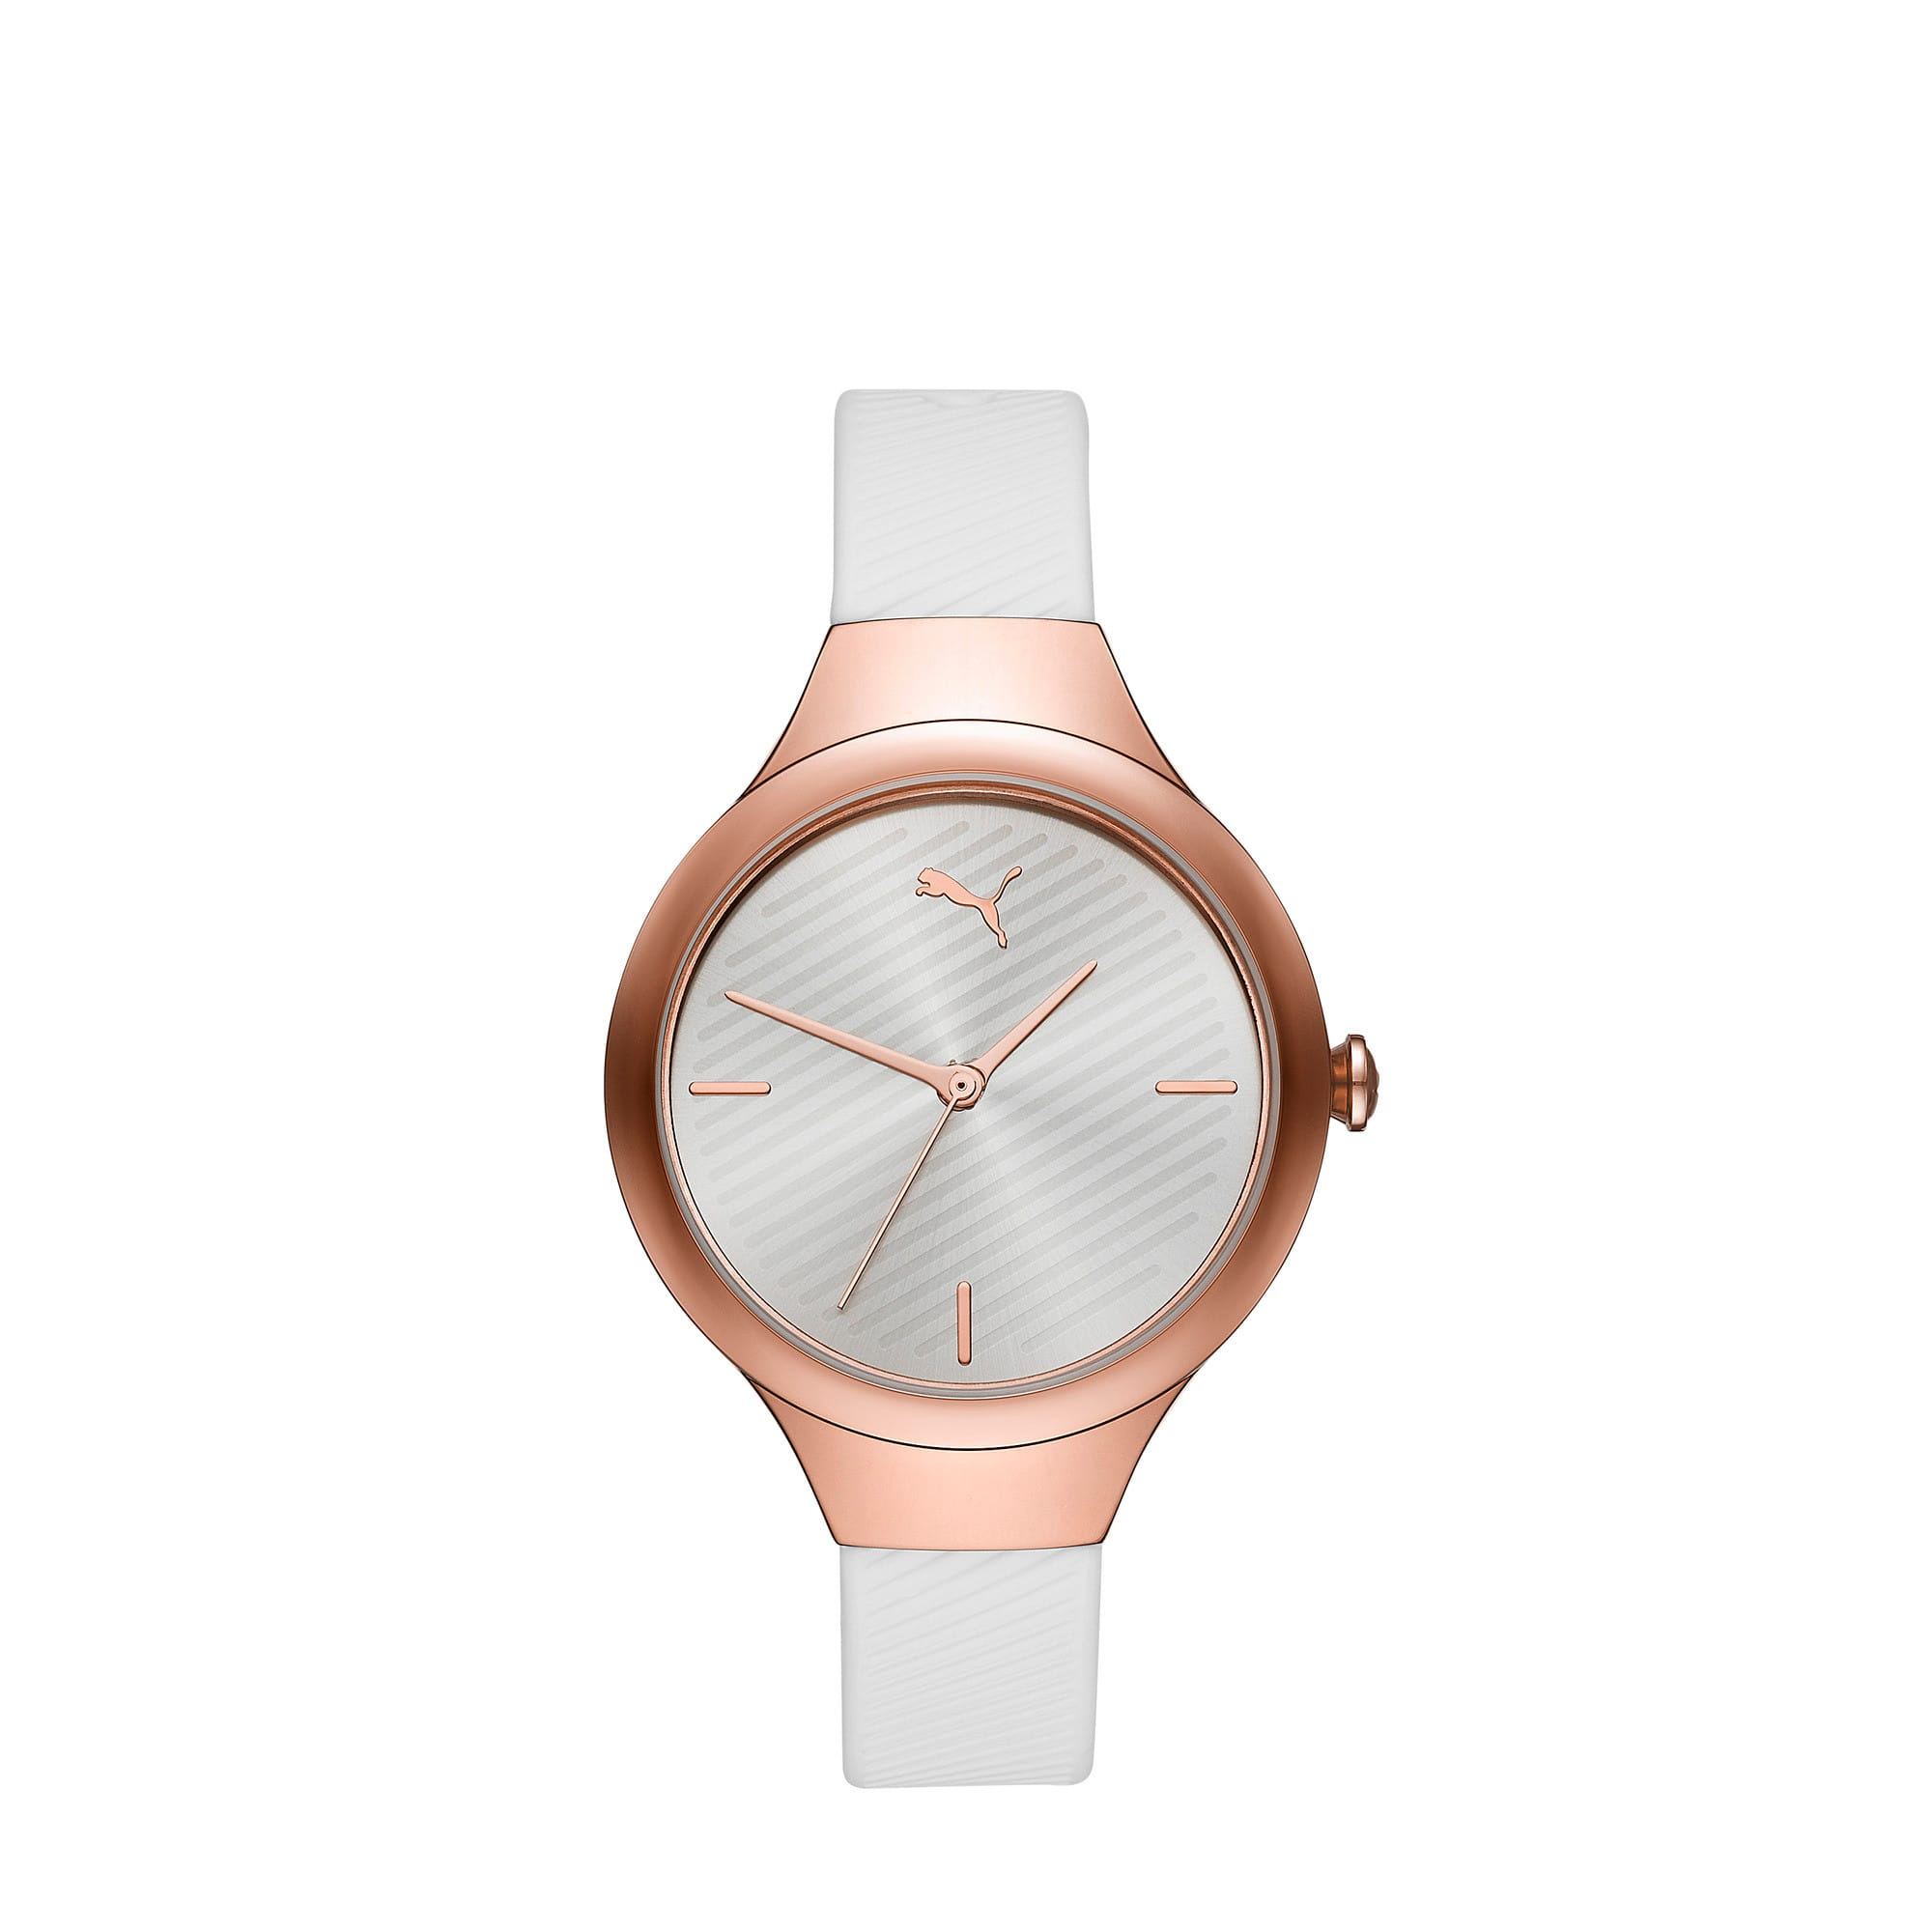 Contour Rose Gold Watch, Rose gold/White, large